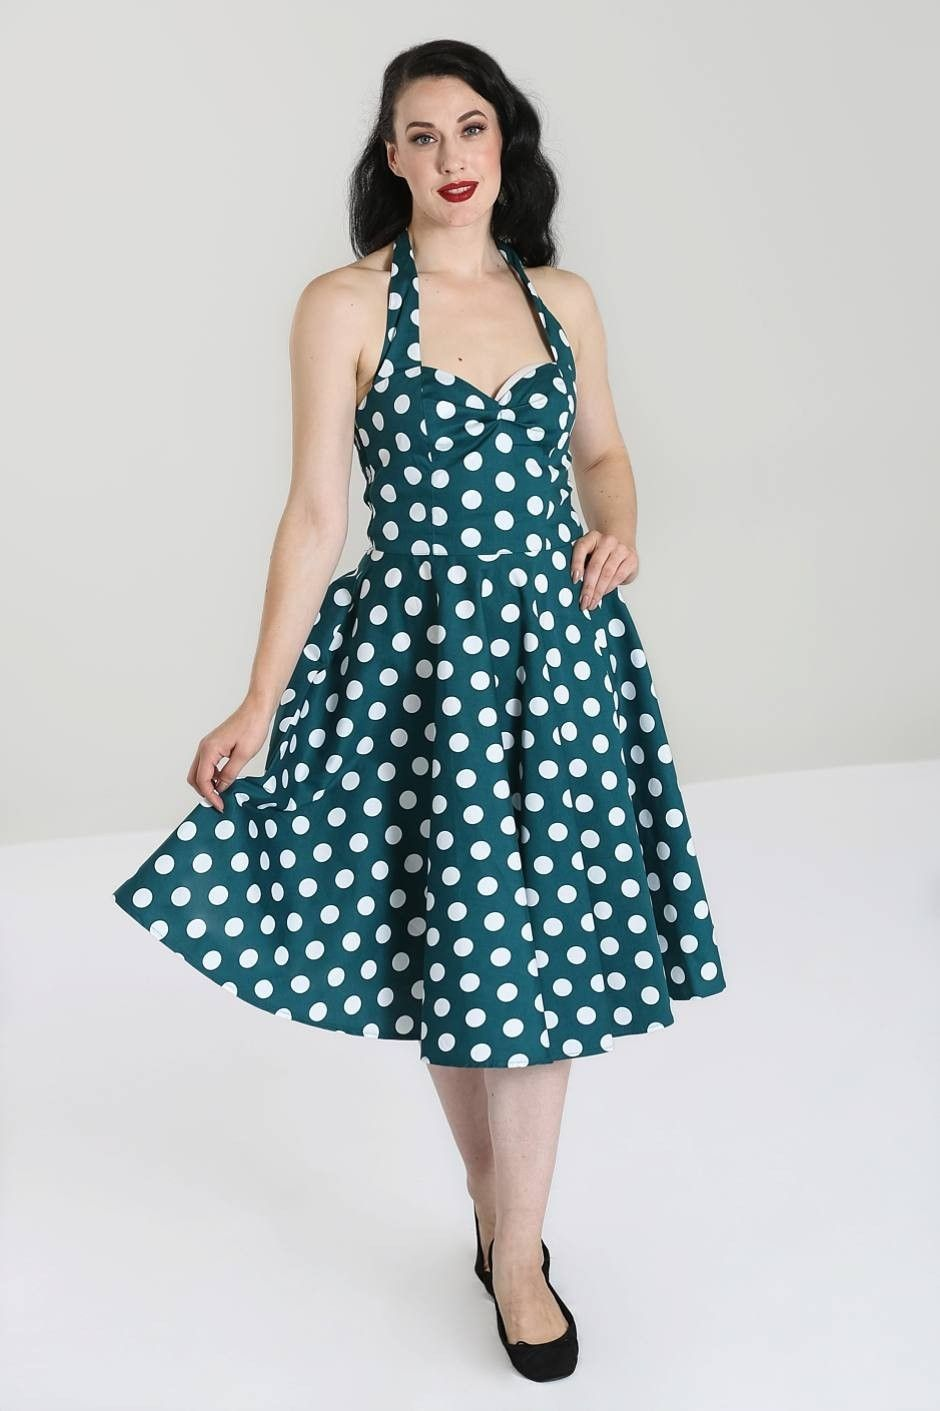 1950s Style Teal Polka Dot Halterneck Swing Dress Green - UK10